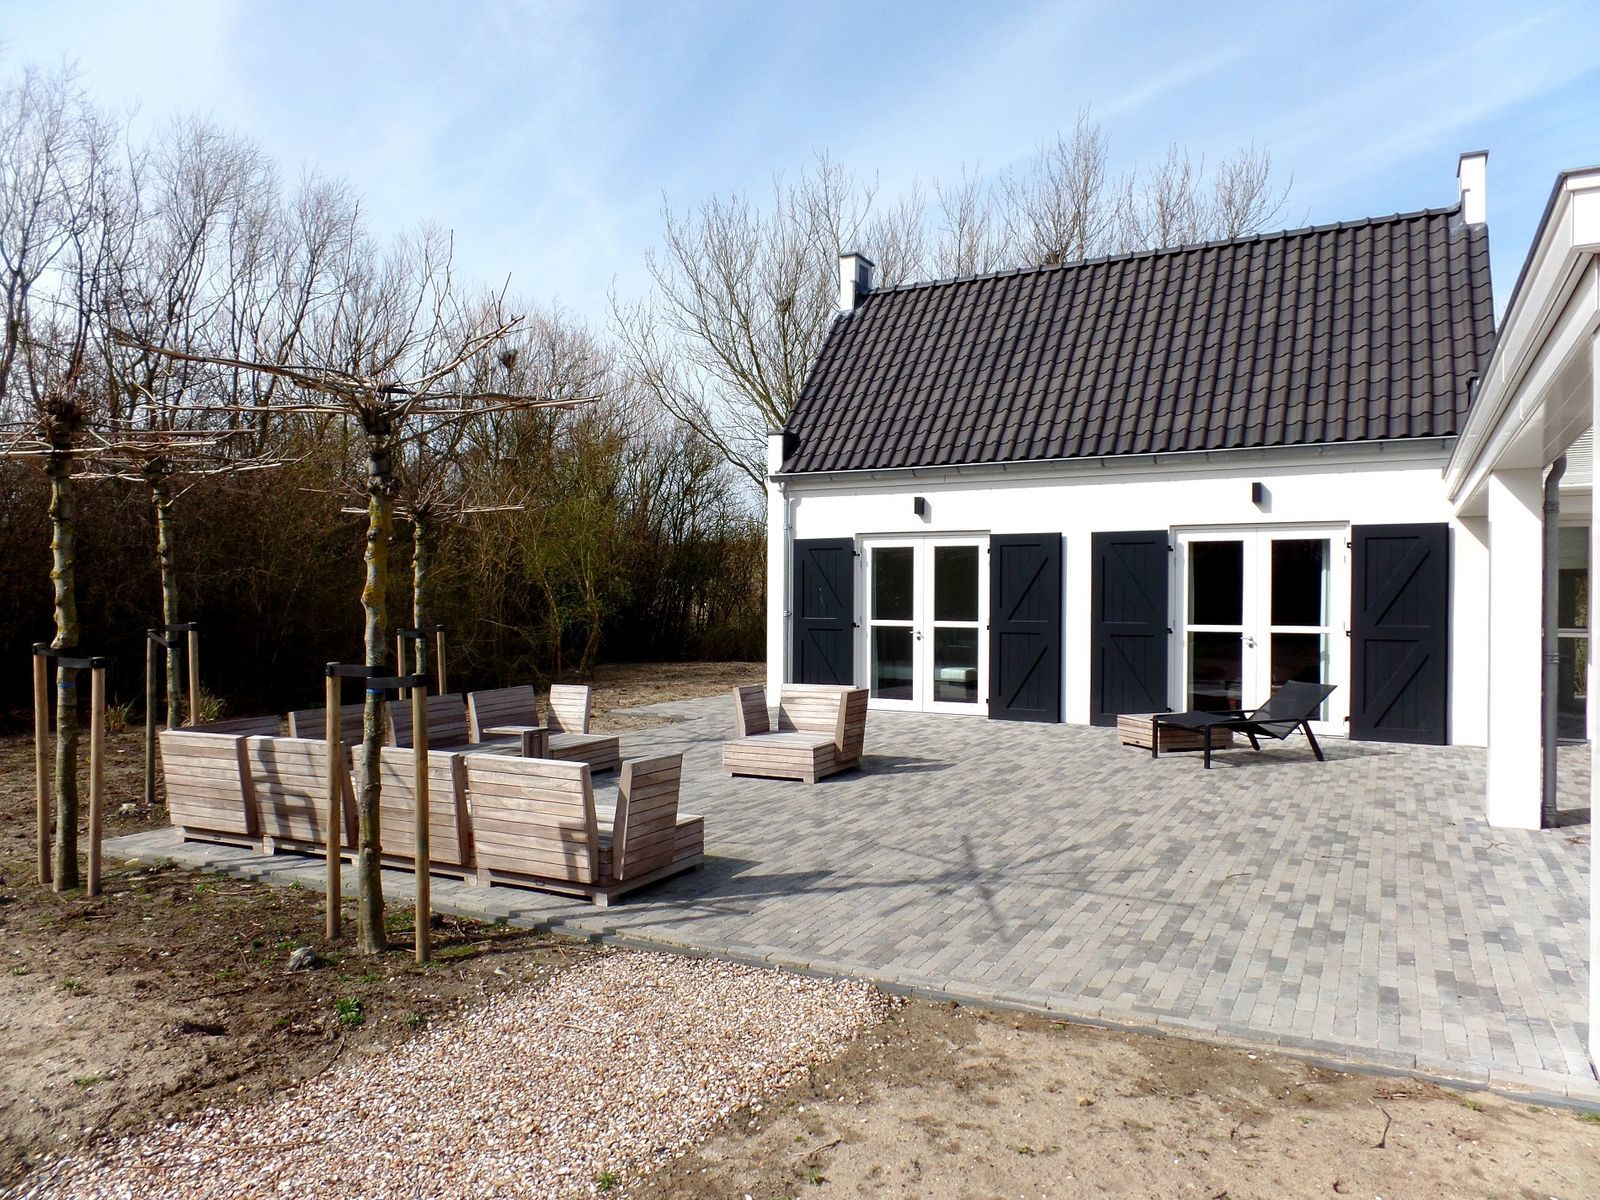 Holidayhouse - Westerweg 23 | Ouddorp